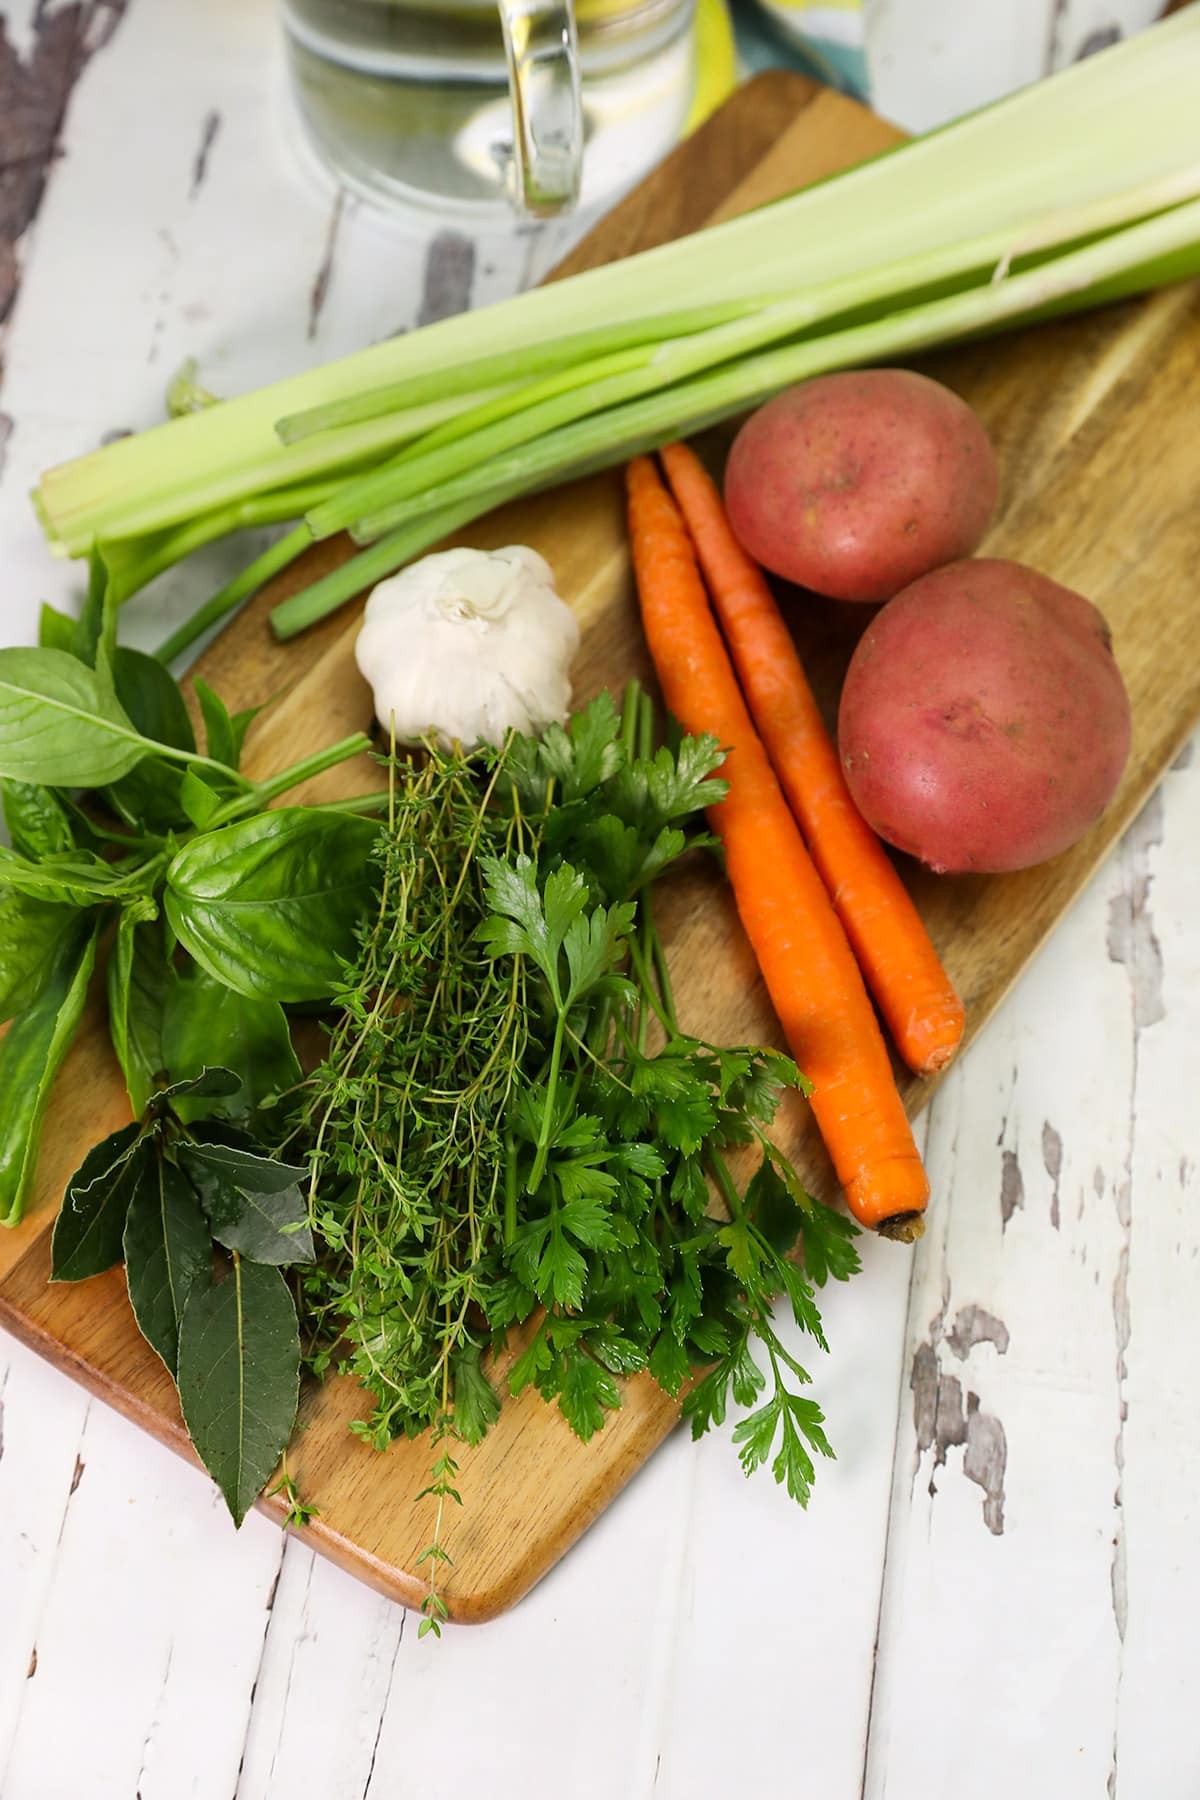 vegan broth ingredients, potato, carrot, celery herbs, garlic spices on a wooden background